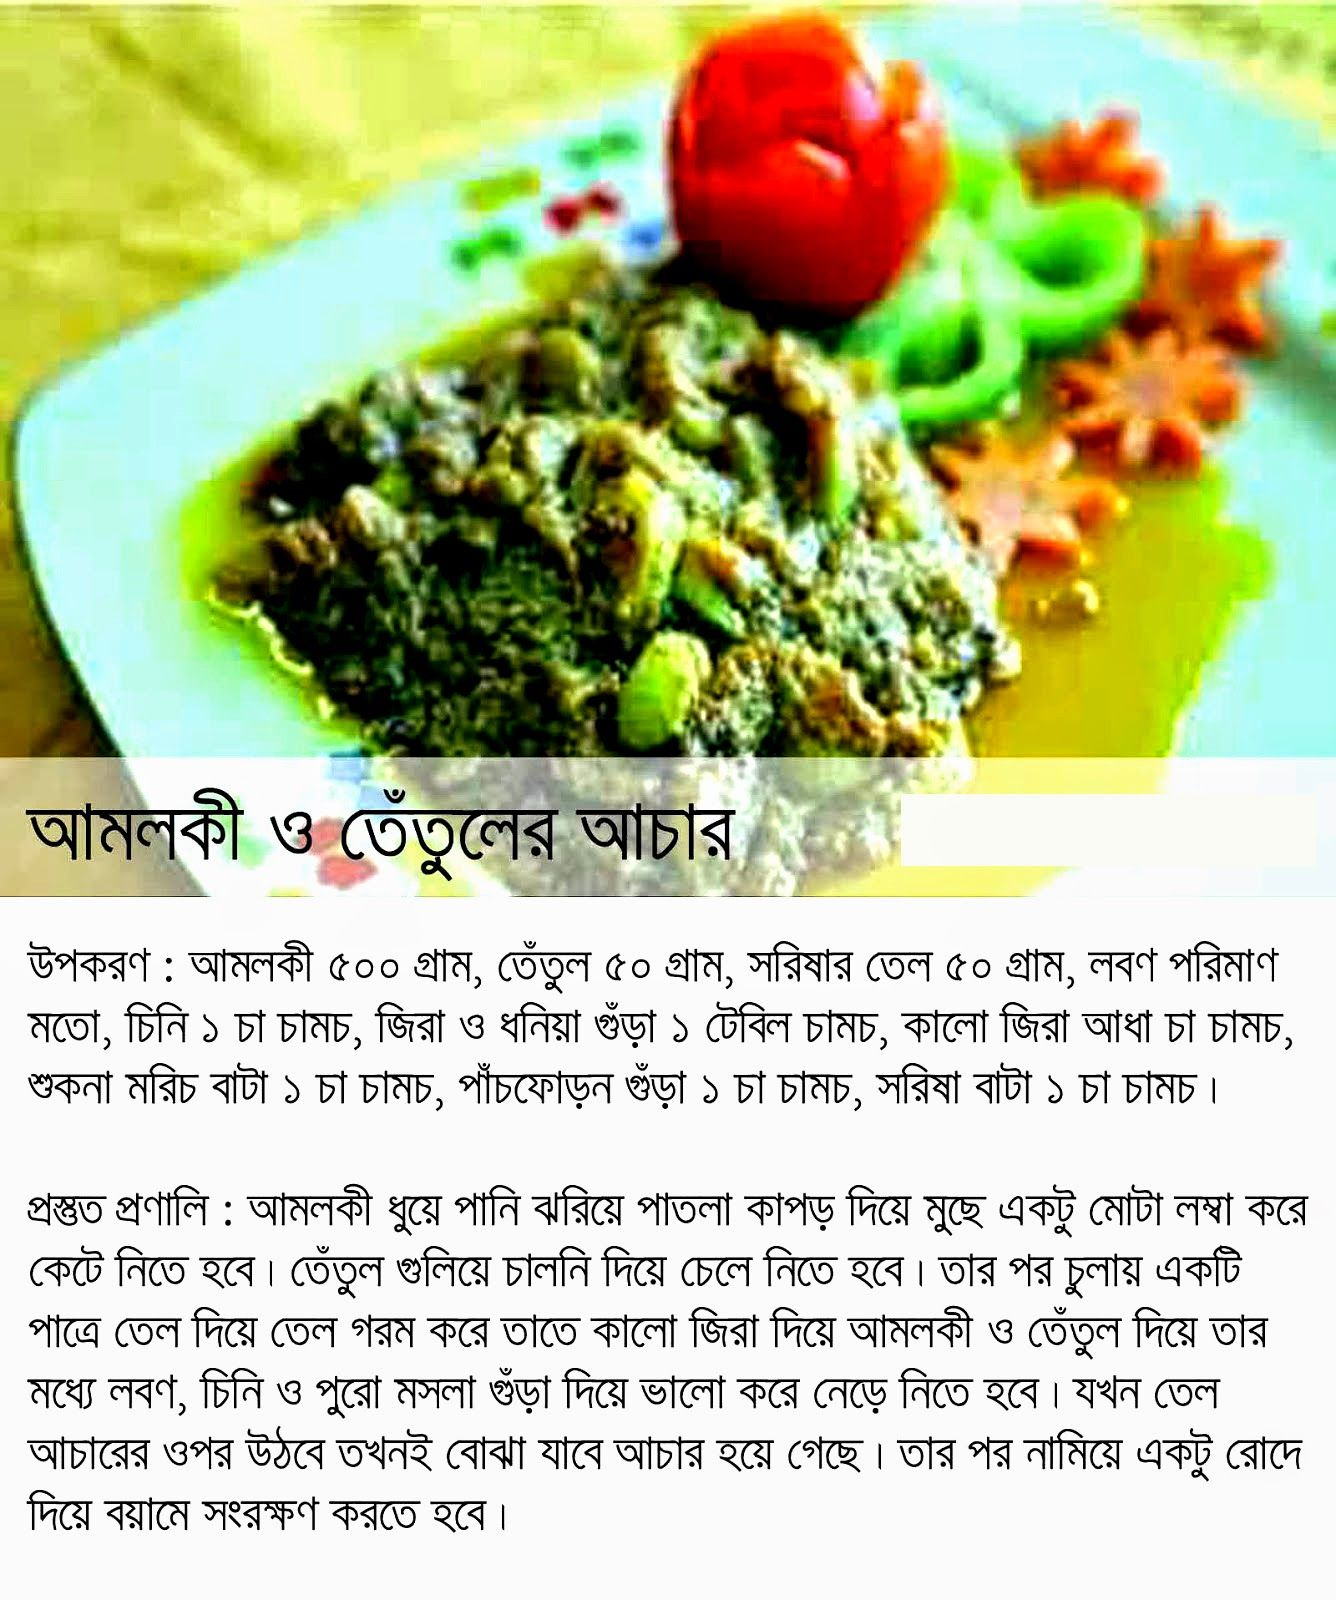 Bangladeshi food recipe gorur mangsher motho kabab bangla recipe bangladeshi food recipe gorur mangsher motho kabab bangla recipe recipes pinterest bangladeshi food recipes and food forumfinder Image collections